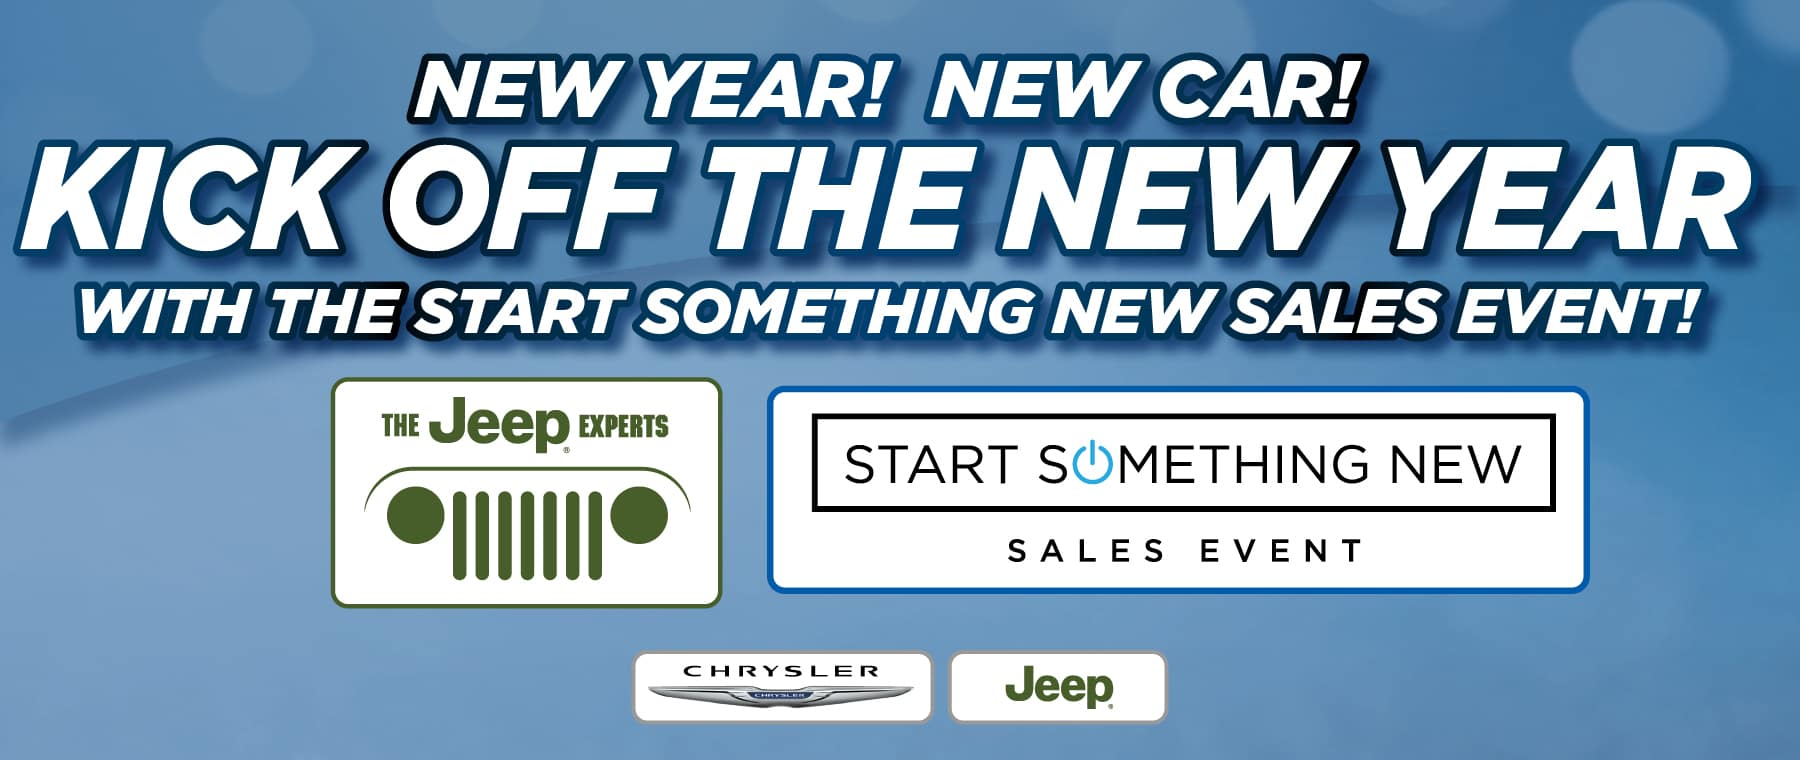 Kick Off the New Year Specials